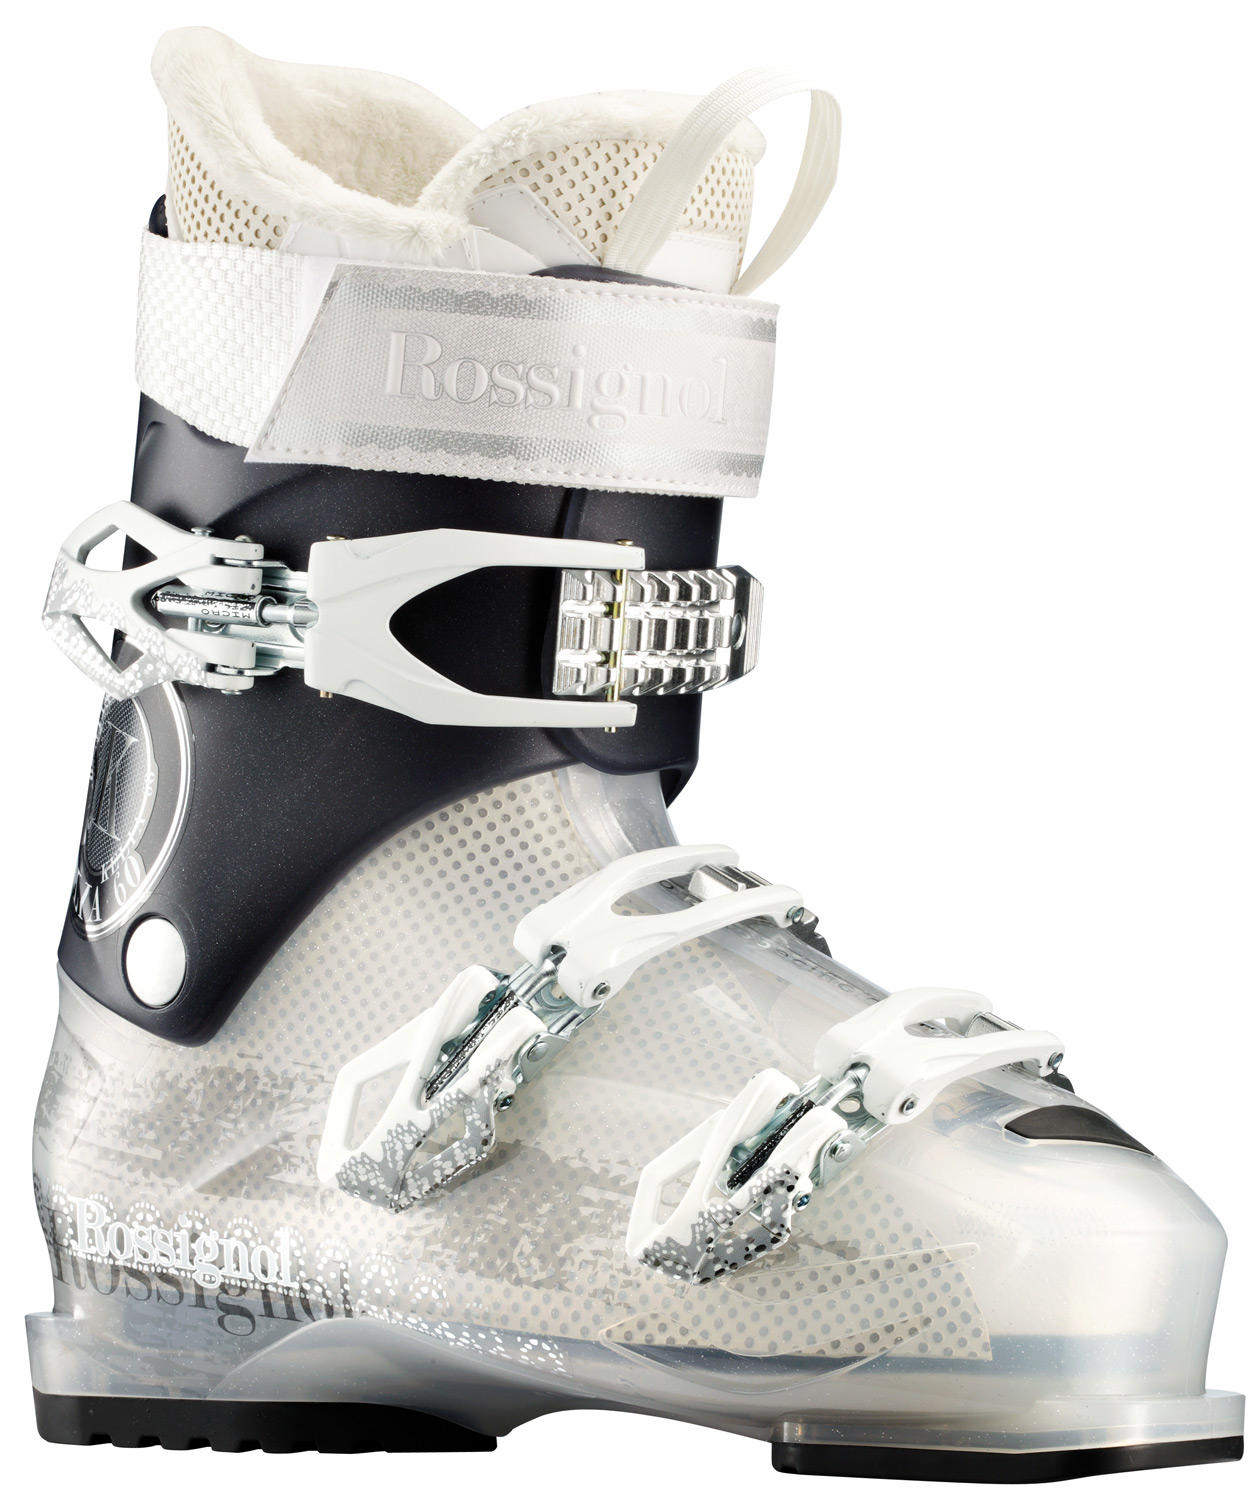 "Ski Women's Sensor boots have a 104mm ""wide"" fit based on the 100mm Women's Sensor. Sensor shells feature a 4mm wider ""V"" shape in the forefoot, preserving the contoured fit, strong heel cup and asymmetrical toe box. Sensor Fit liners provide an open instep and accommodating ankle area, increasing comfort, performance and warmth. Available in 80 to 50 flex ranges, Women's Sensor boots are perfect for intermediate to novice skiers who want confident all-mountain performance and a generous fit.Key Features of the Rossignol Kelia 60 Ski Boots Transparent: last : 104 mm FLEX : 60 MATERIAL : NEW POLYOLEFINE PADDING : MACHINED PU - $139.95"